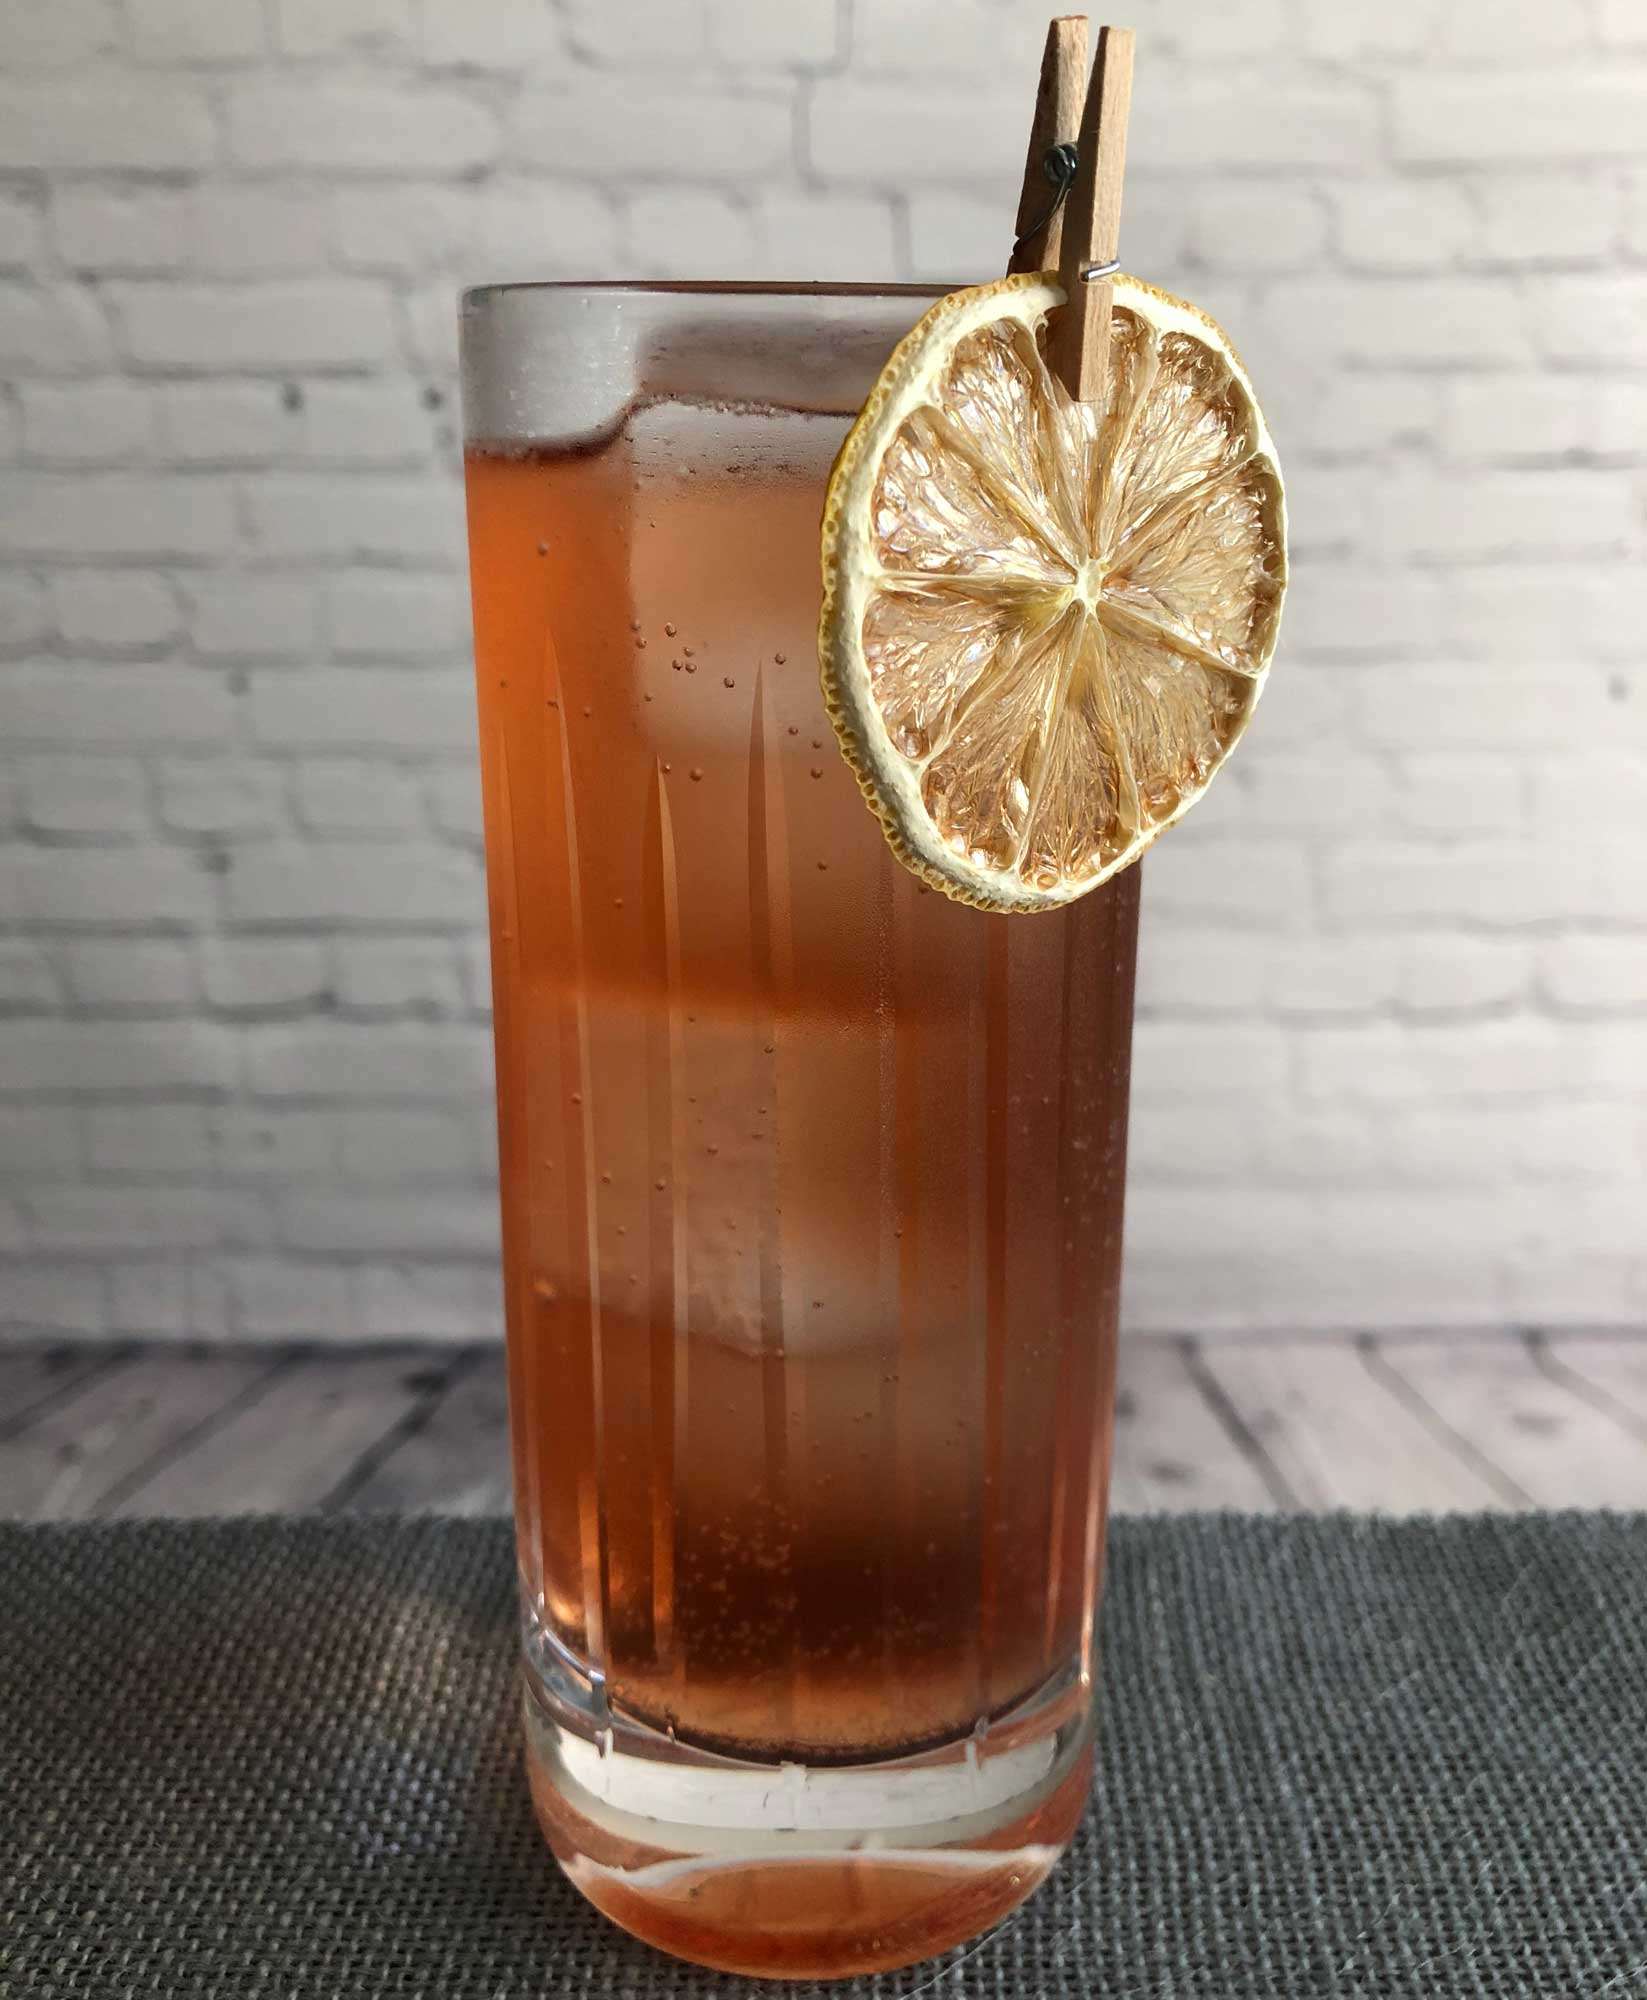 An example of the Catalan Cooler, the mixed drink (cooler) featuring soda water, Dolin Dry Vermouth de Chambéry, and Byrrh Grand Quinquina; photo by Lee Edwards